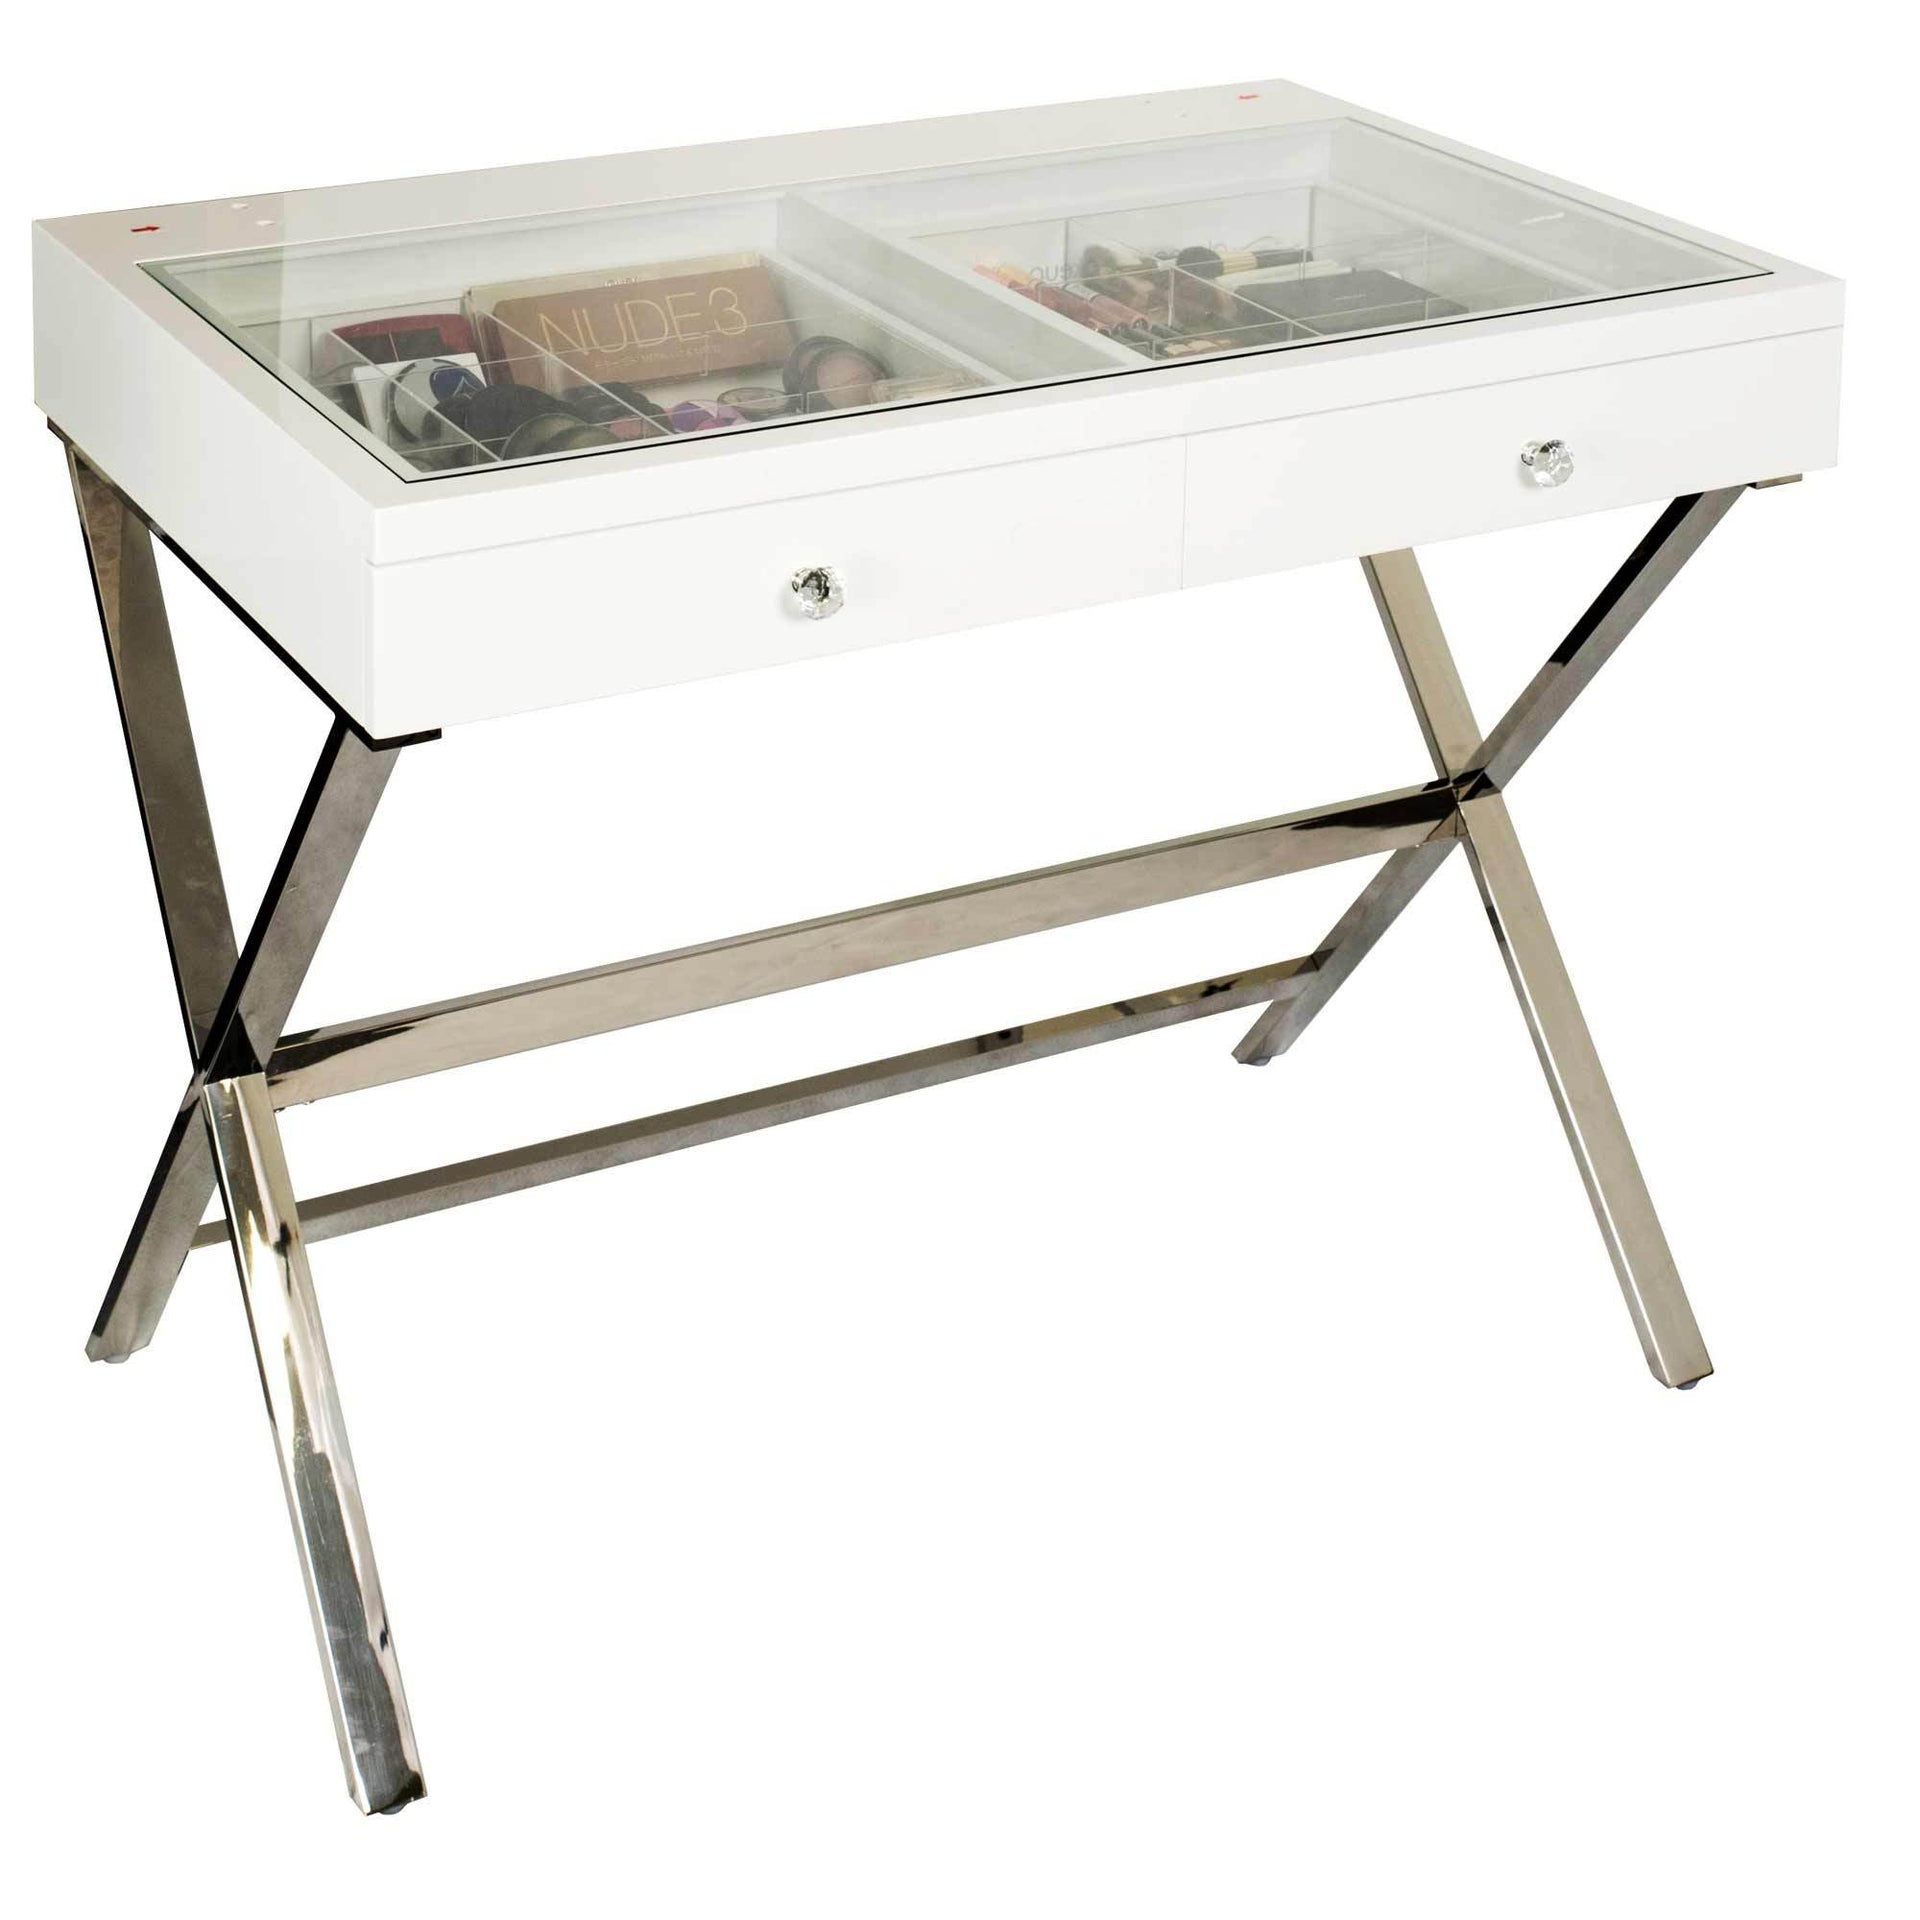 Glamour Studio Vanity Makeup Table by Glamour Makeup Mirrors